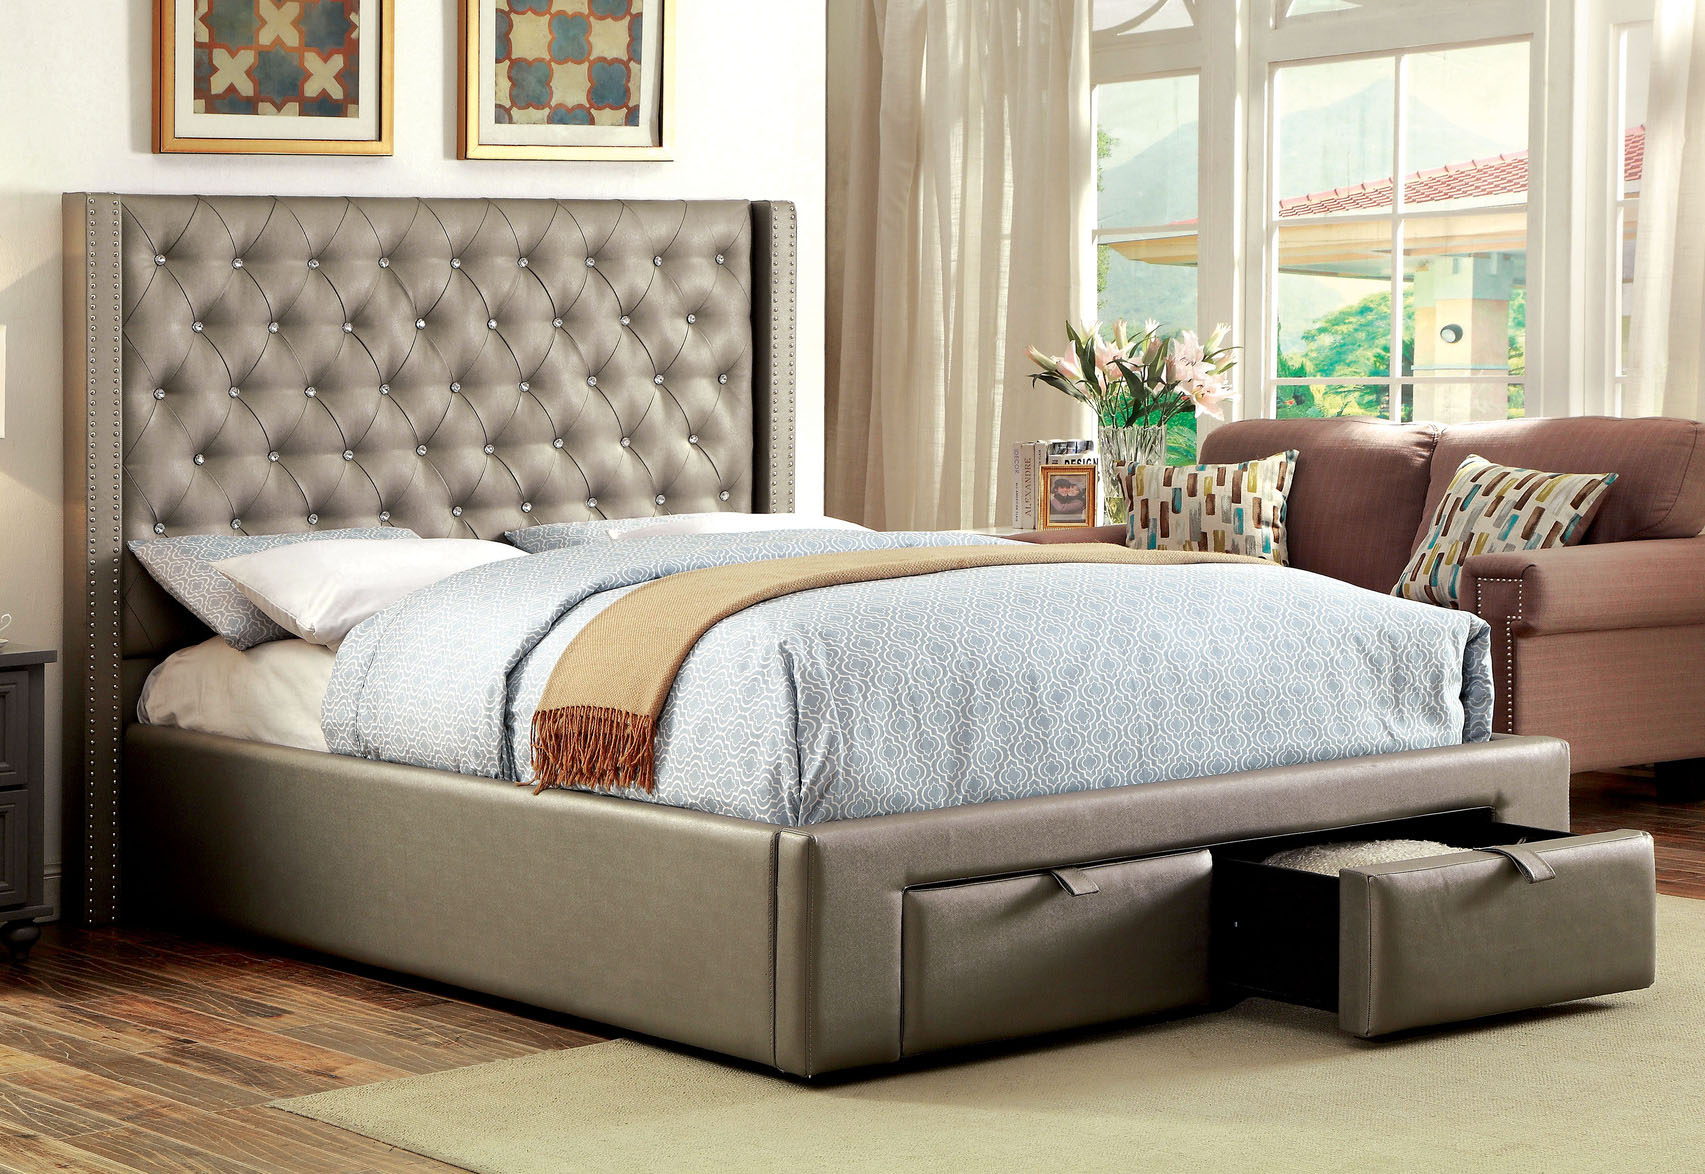 Corina Platform Bed with Drawers in Foot Board